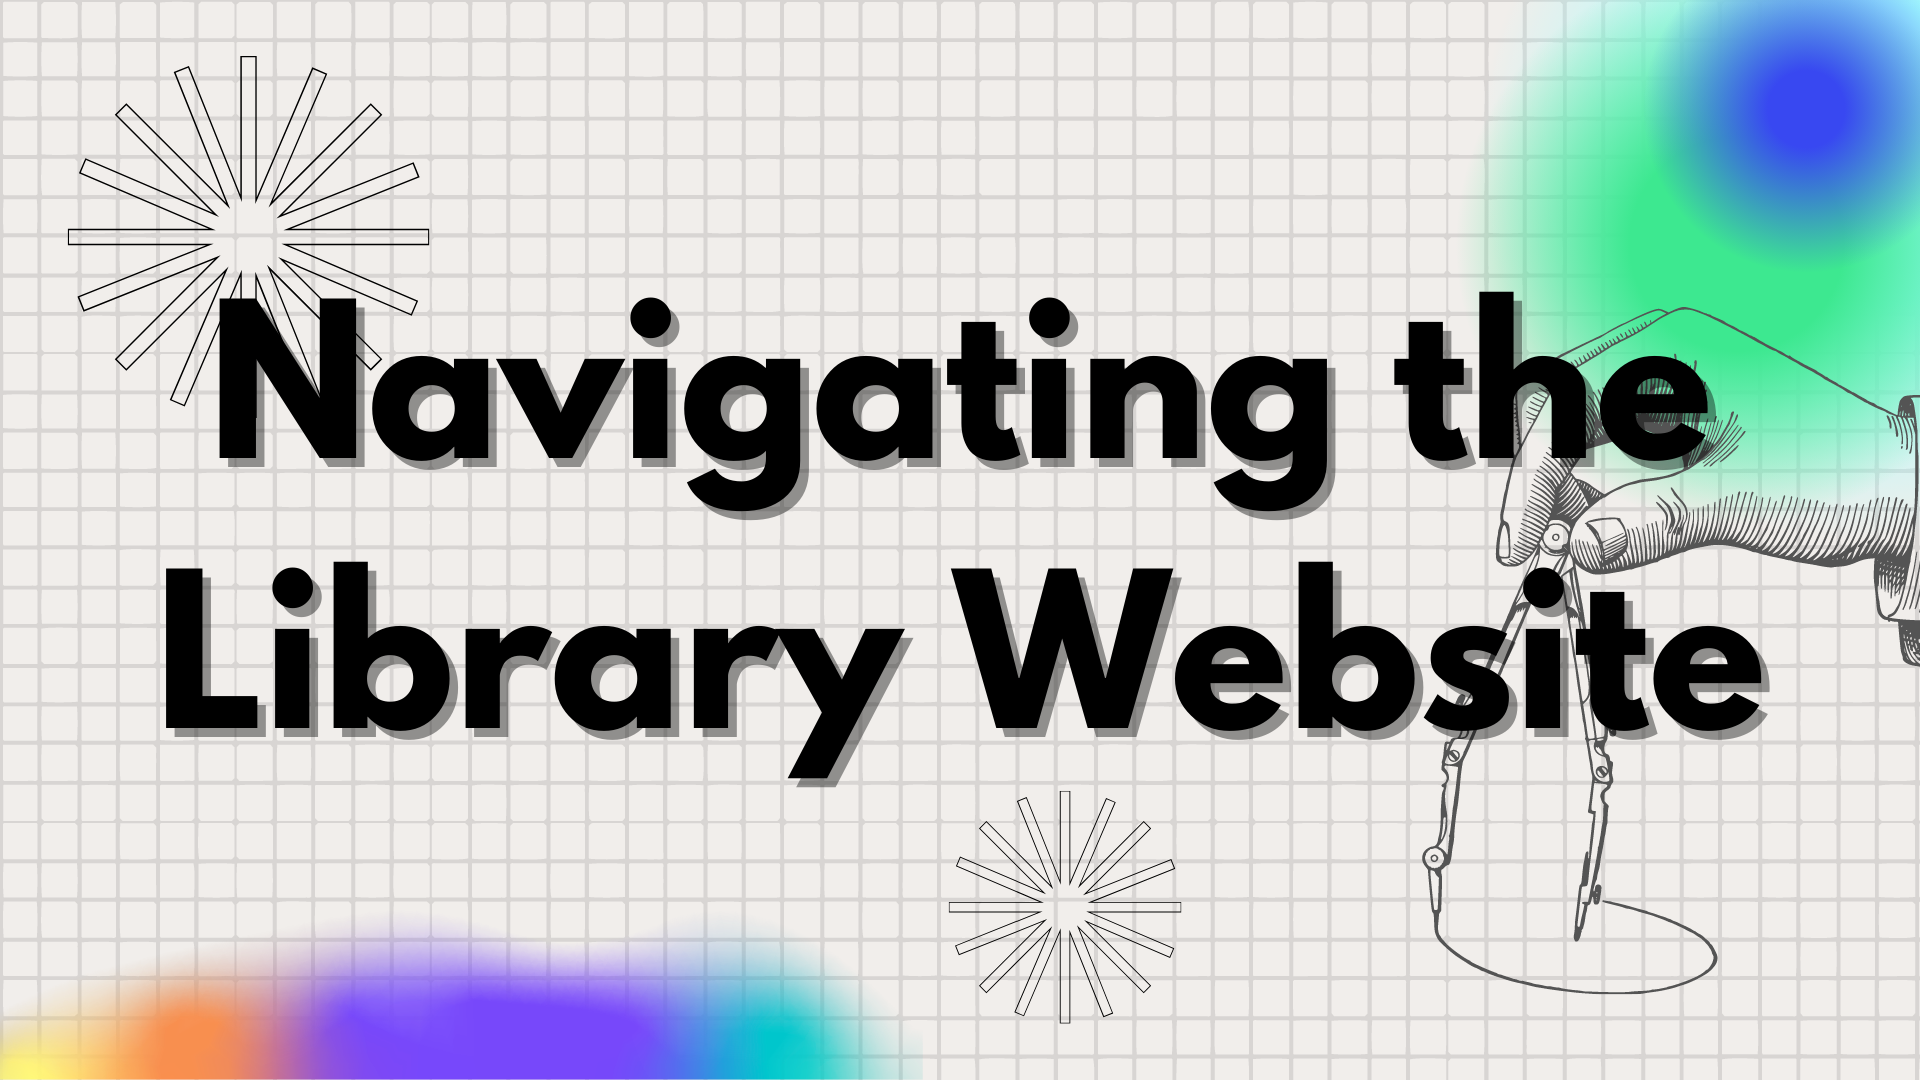 Link to navigating the library website video